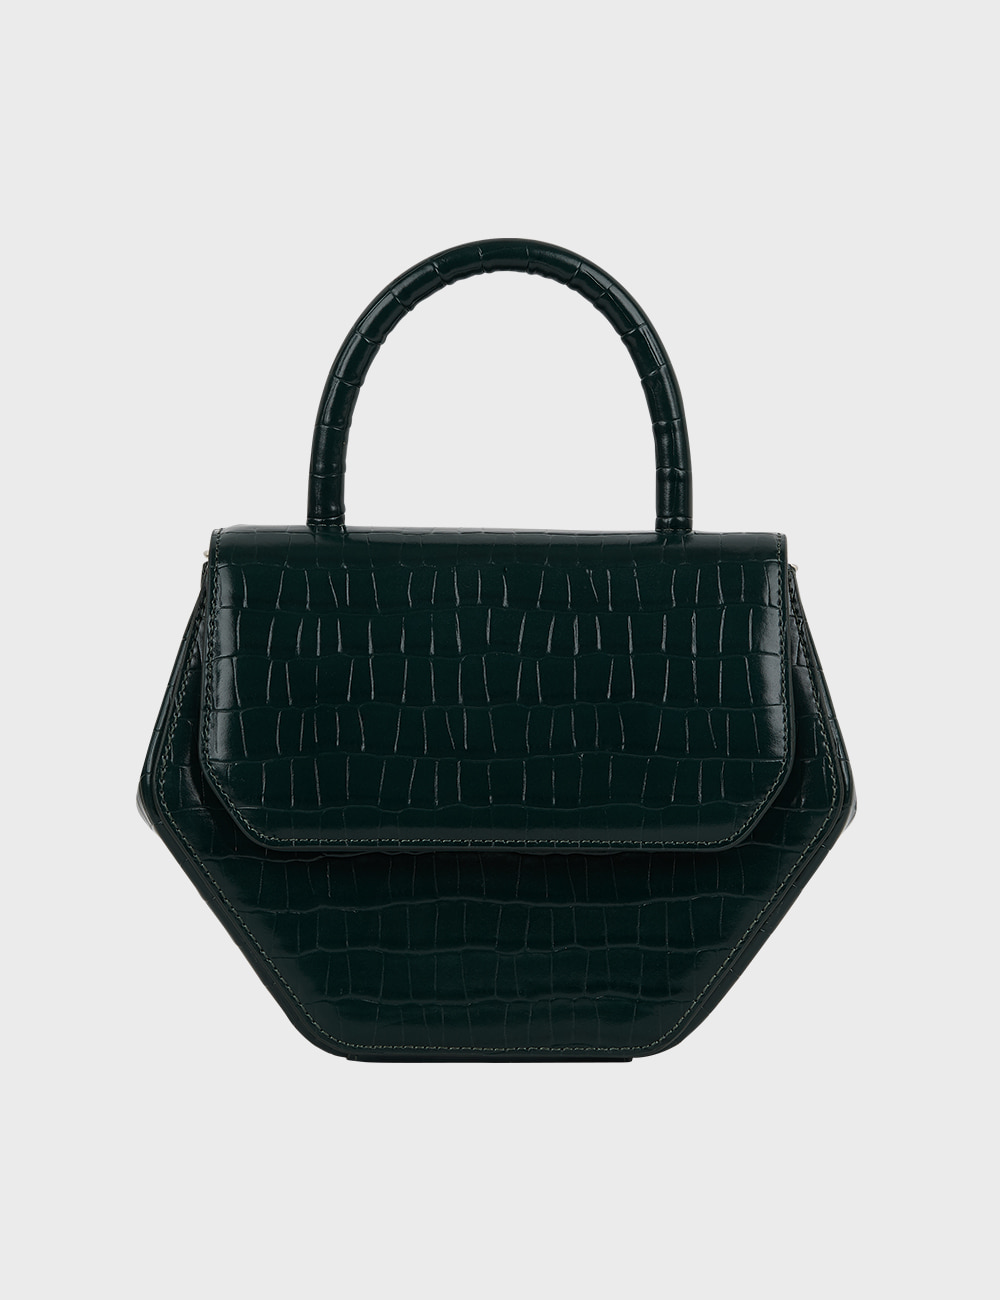 MAISON246,246 MAGOT CROCODILE MEDIUM BAG - DEEP GREEN,No.246